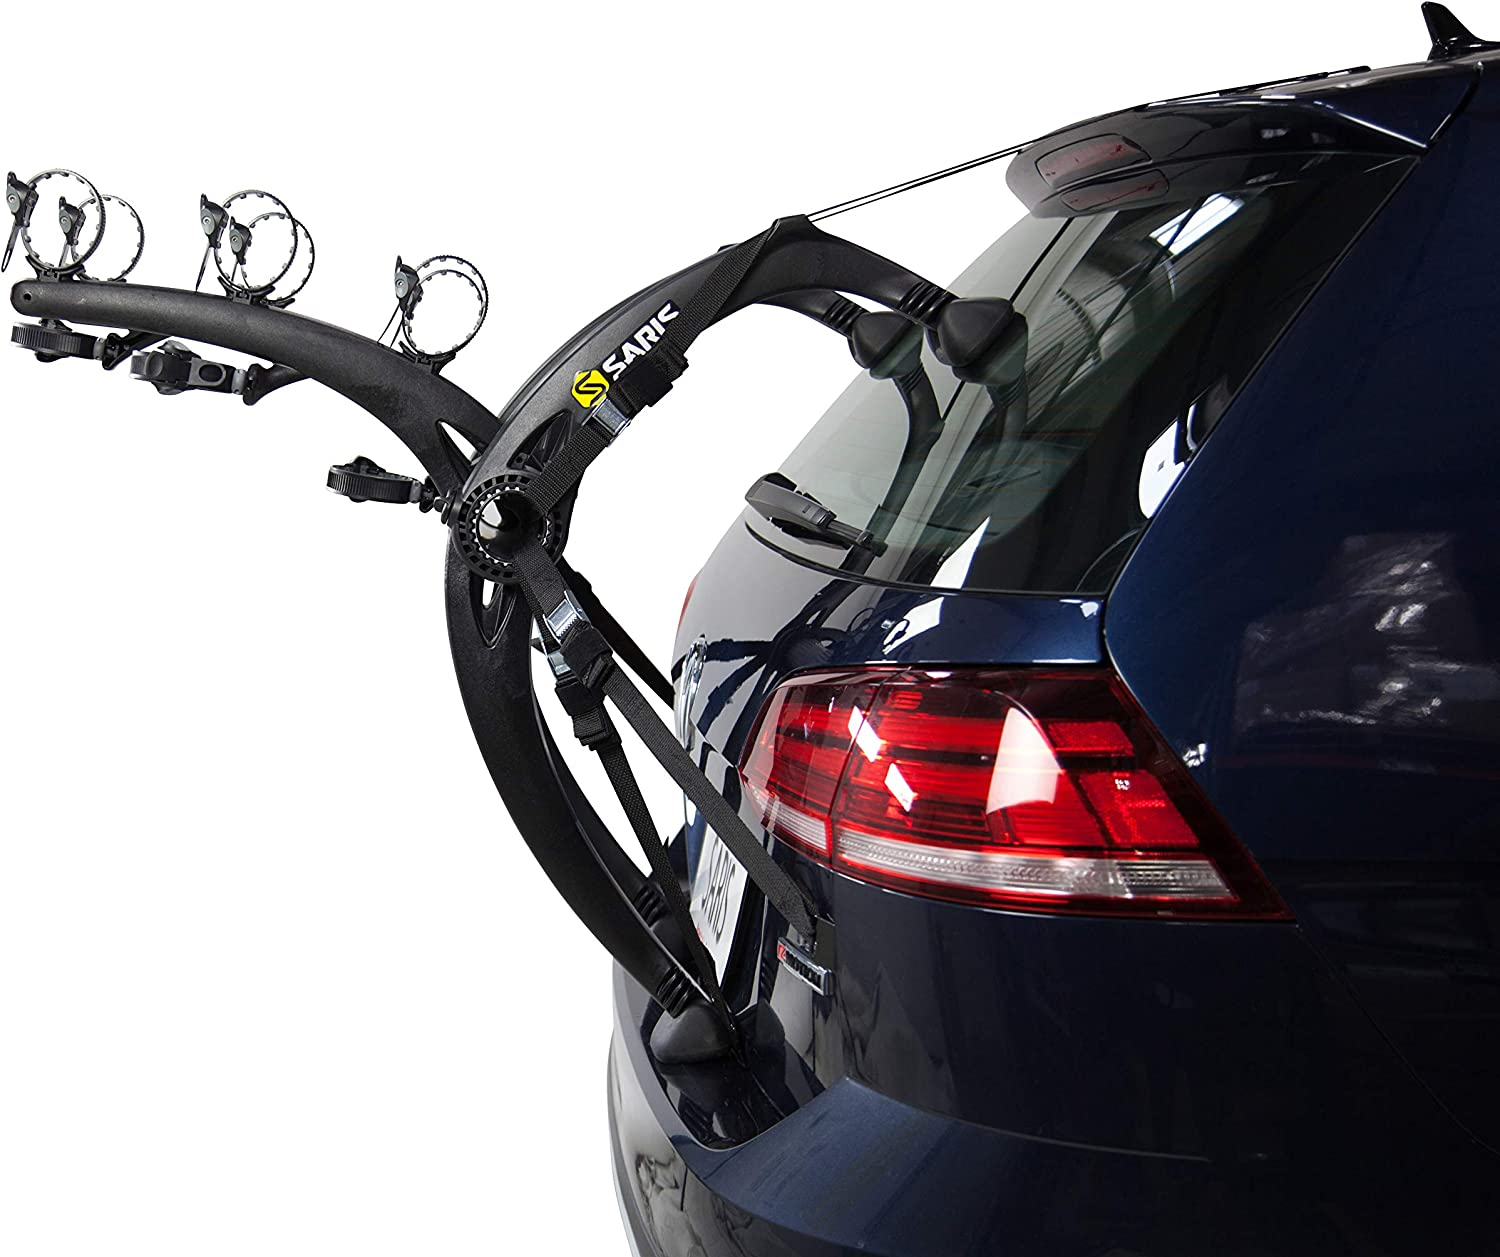 Saris Trunk Rack Lock Secures to Car Theft Prevention Security Bike Bicycle